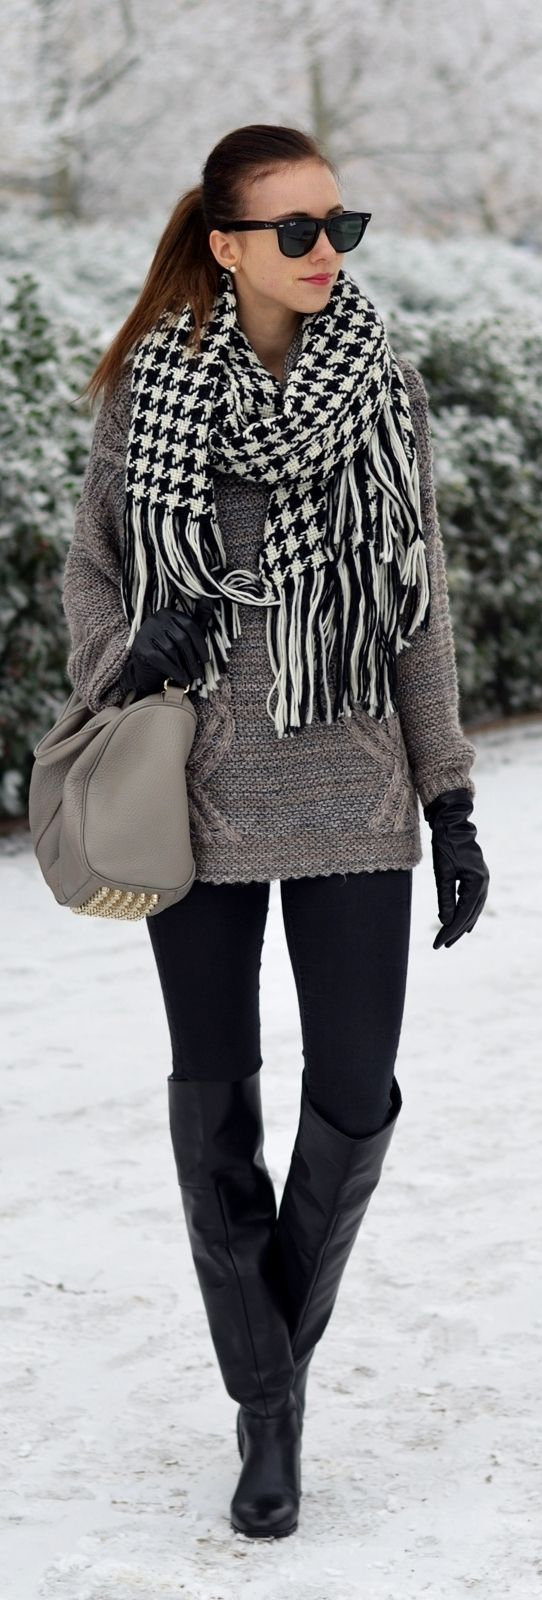 Winter look: Black and white hounds-tooth scarf, chunky sweater, leggings and over the knee, black leather boots.